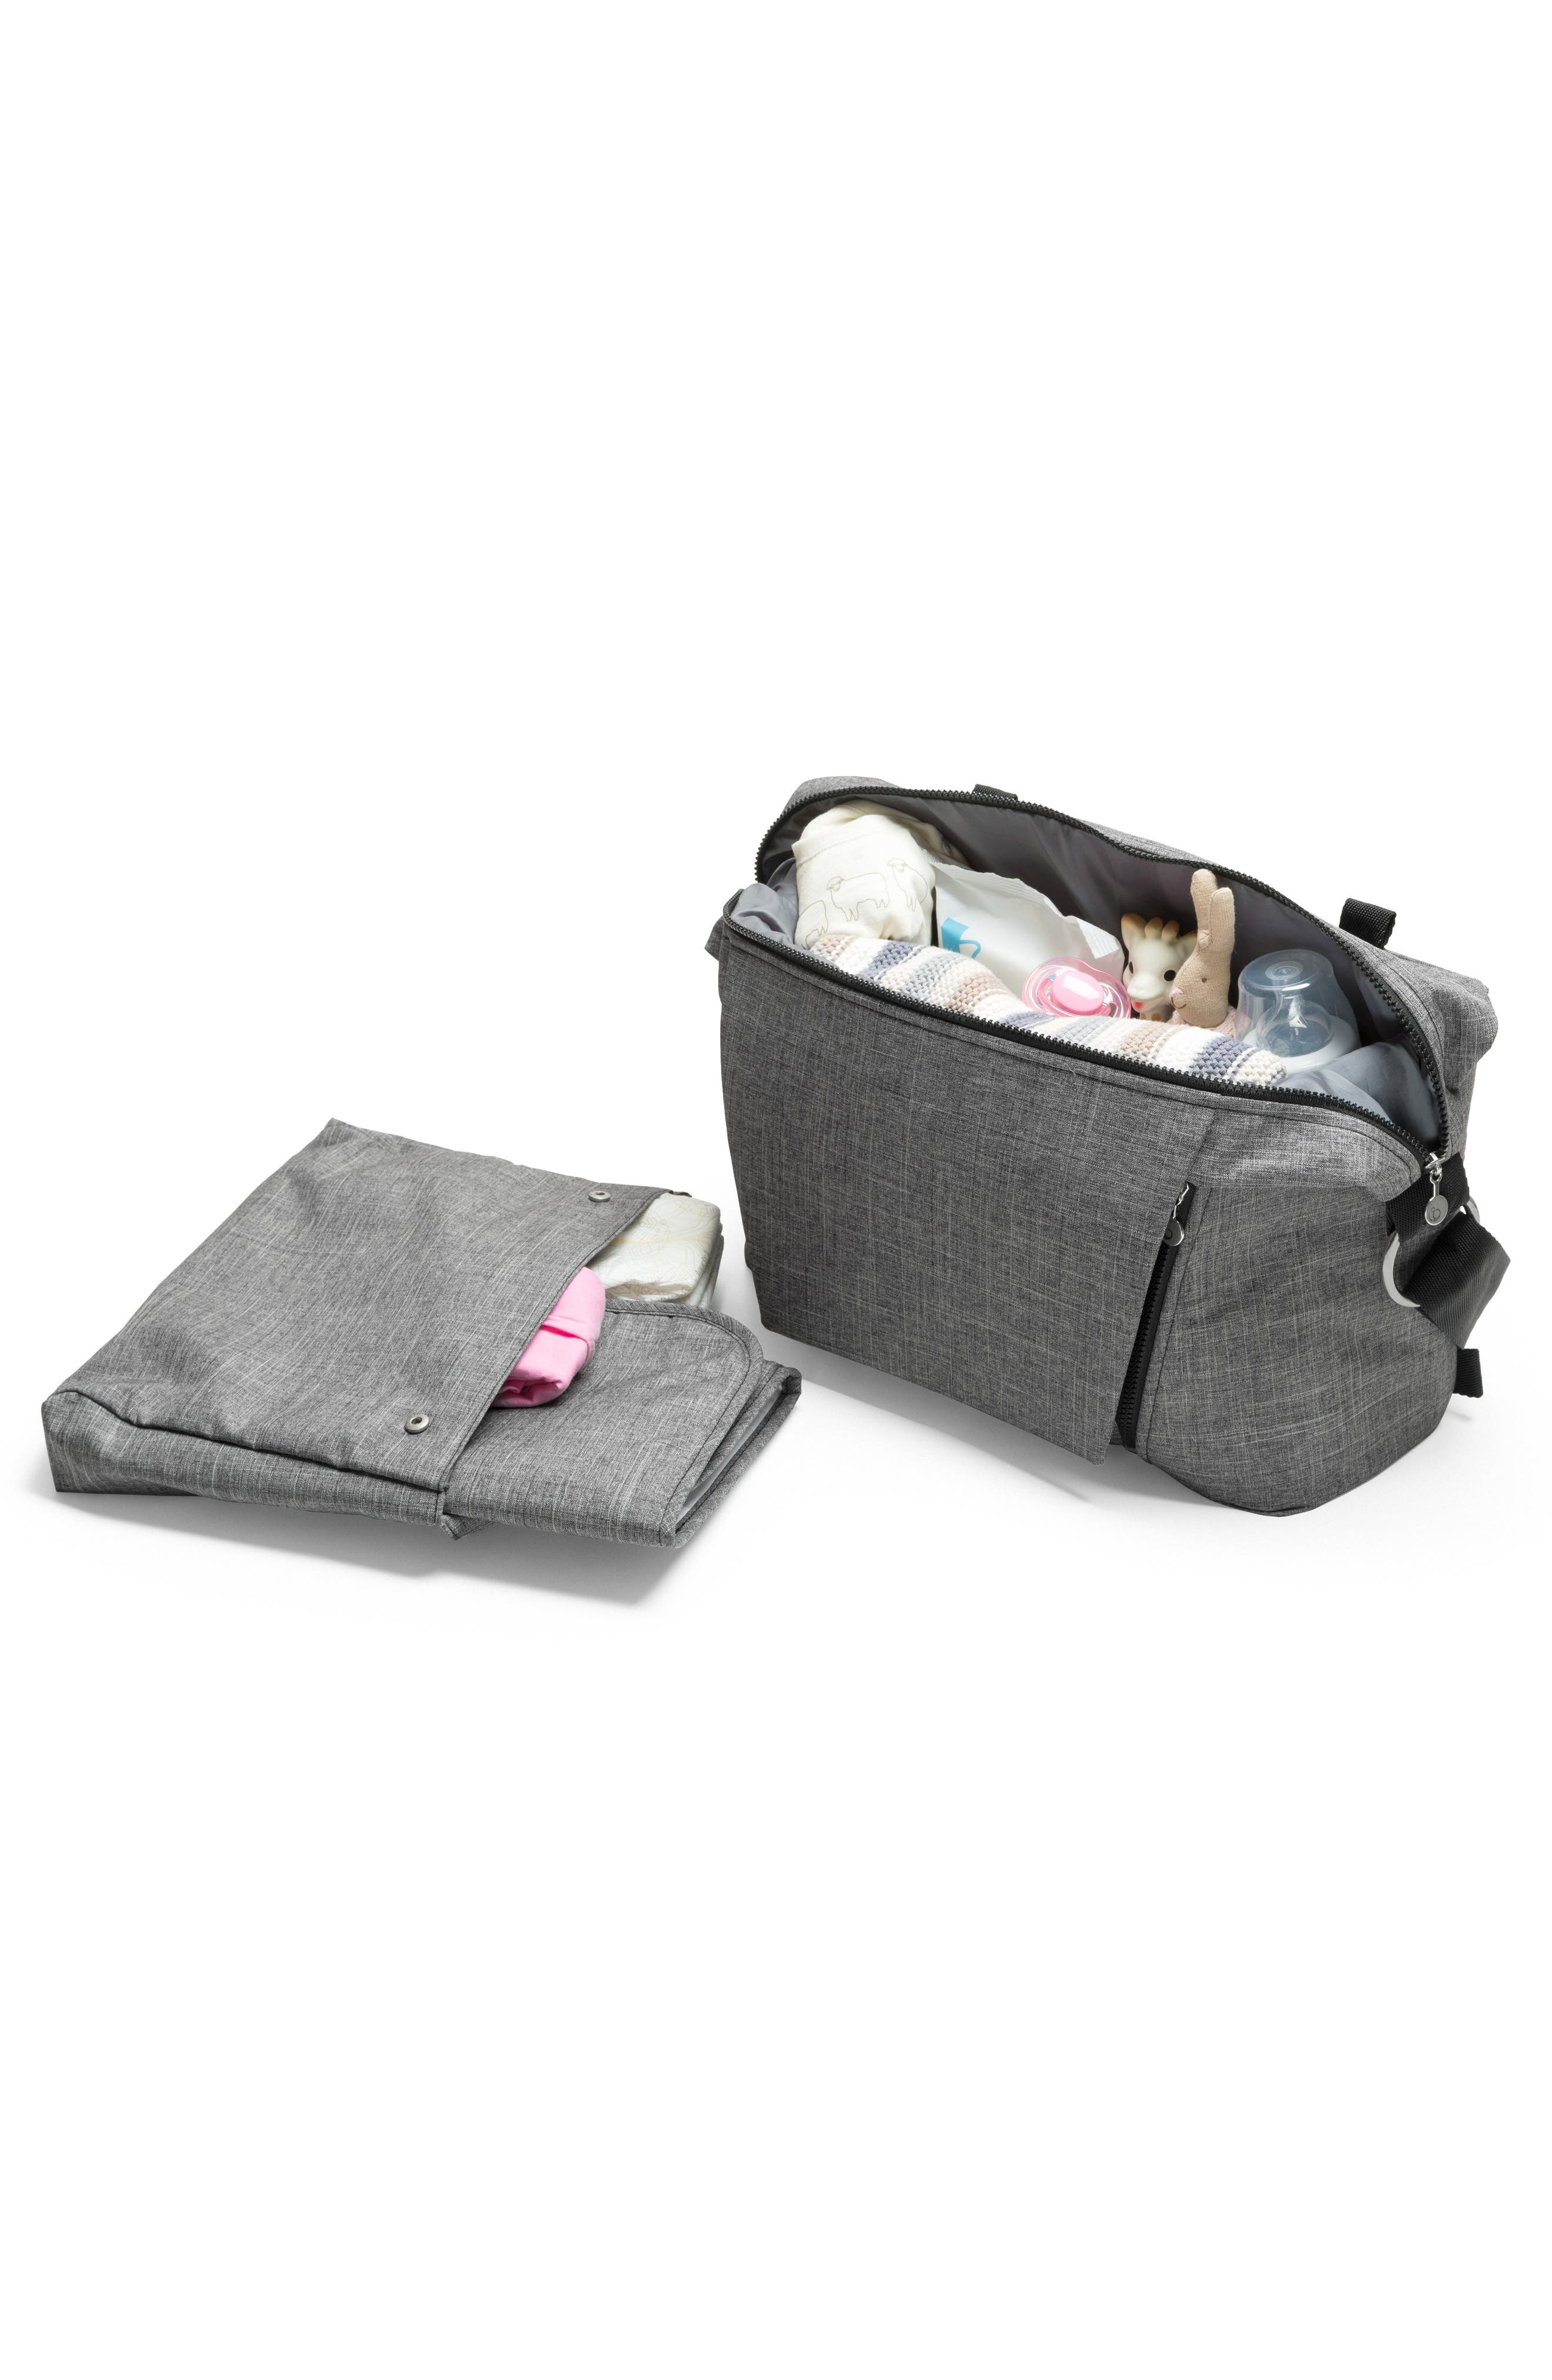 Alternate Image 2  - Stokke Changing Diaper Bag